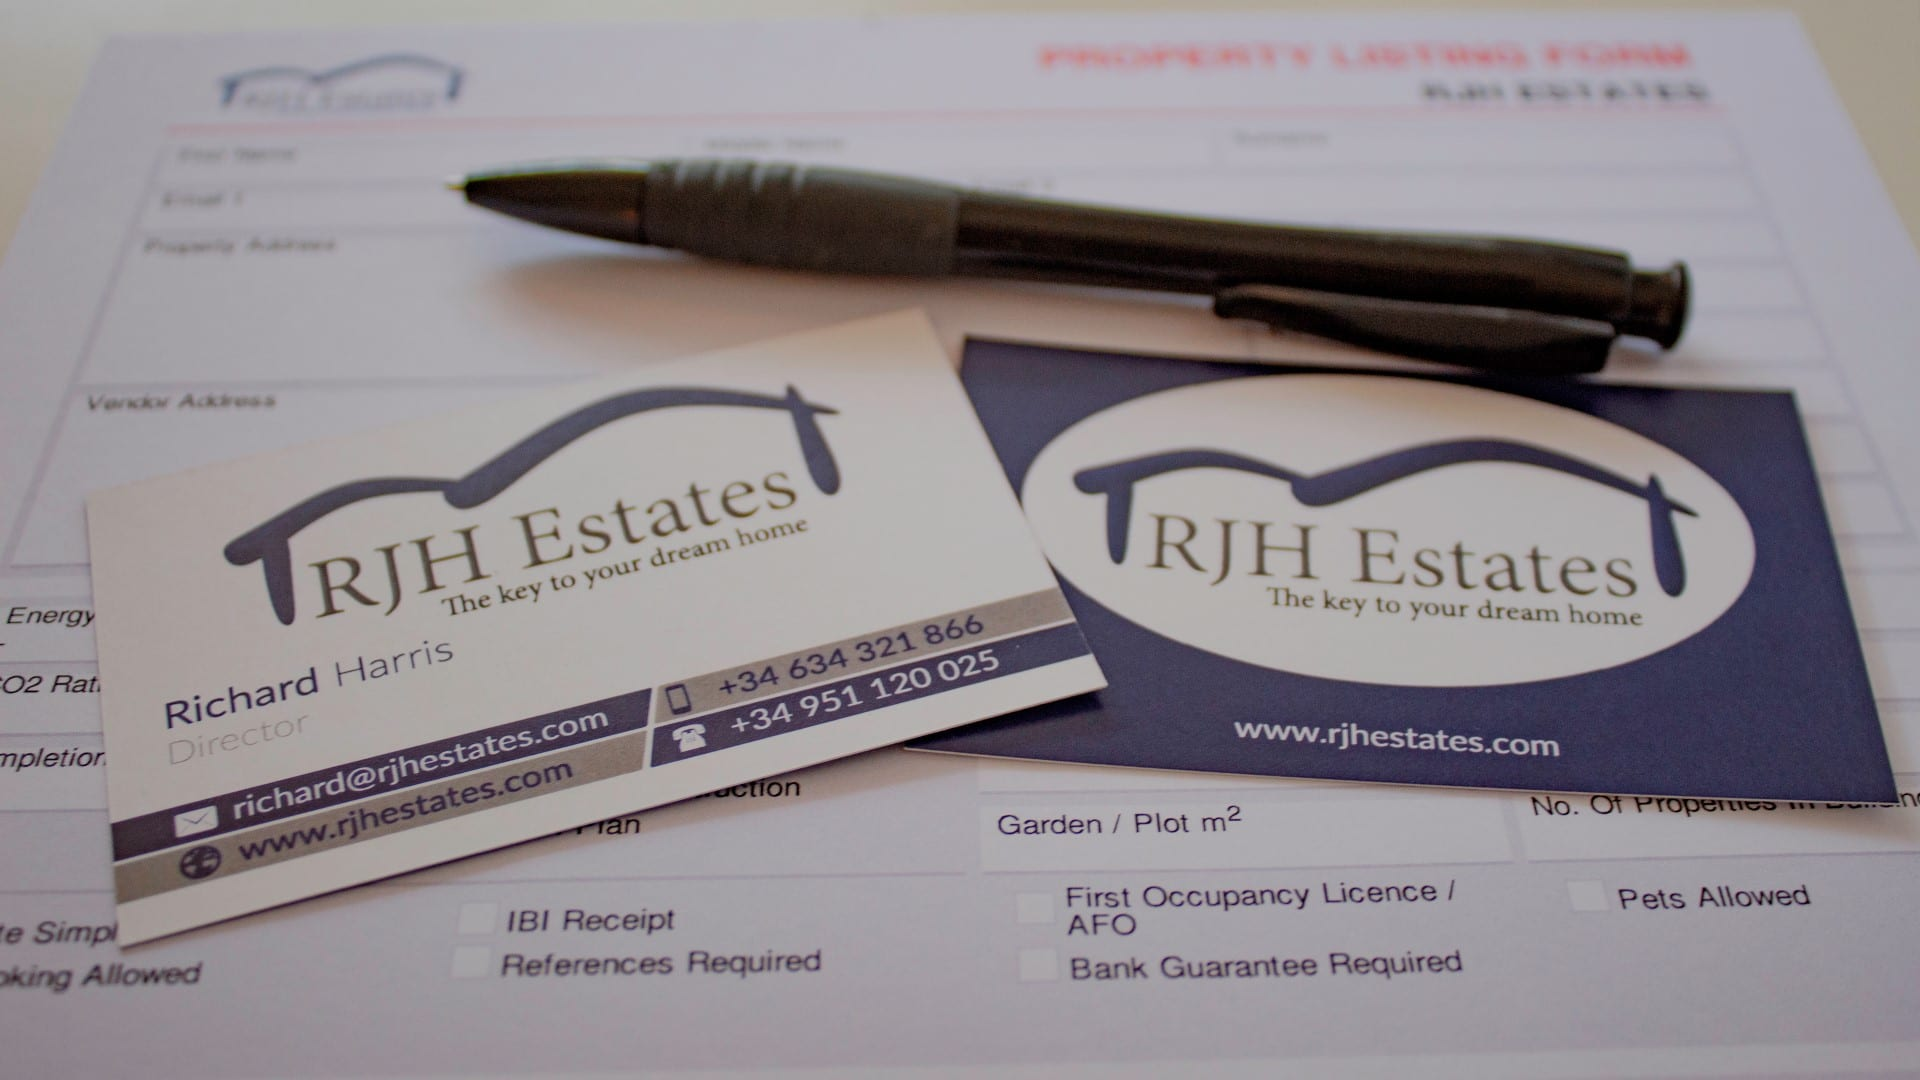 Sell My Property in Spain - RJH Estates - Listing Form - Property for Sale - Real Estate Agents in Spain